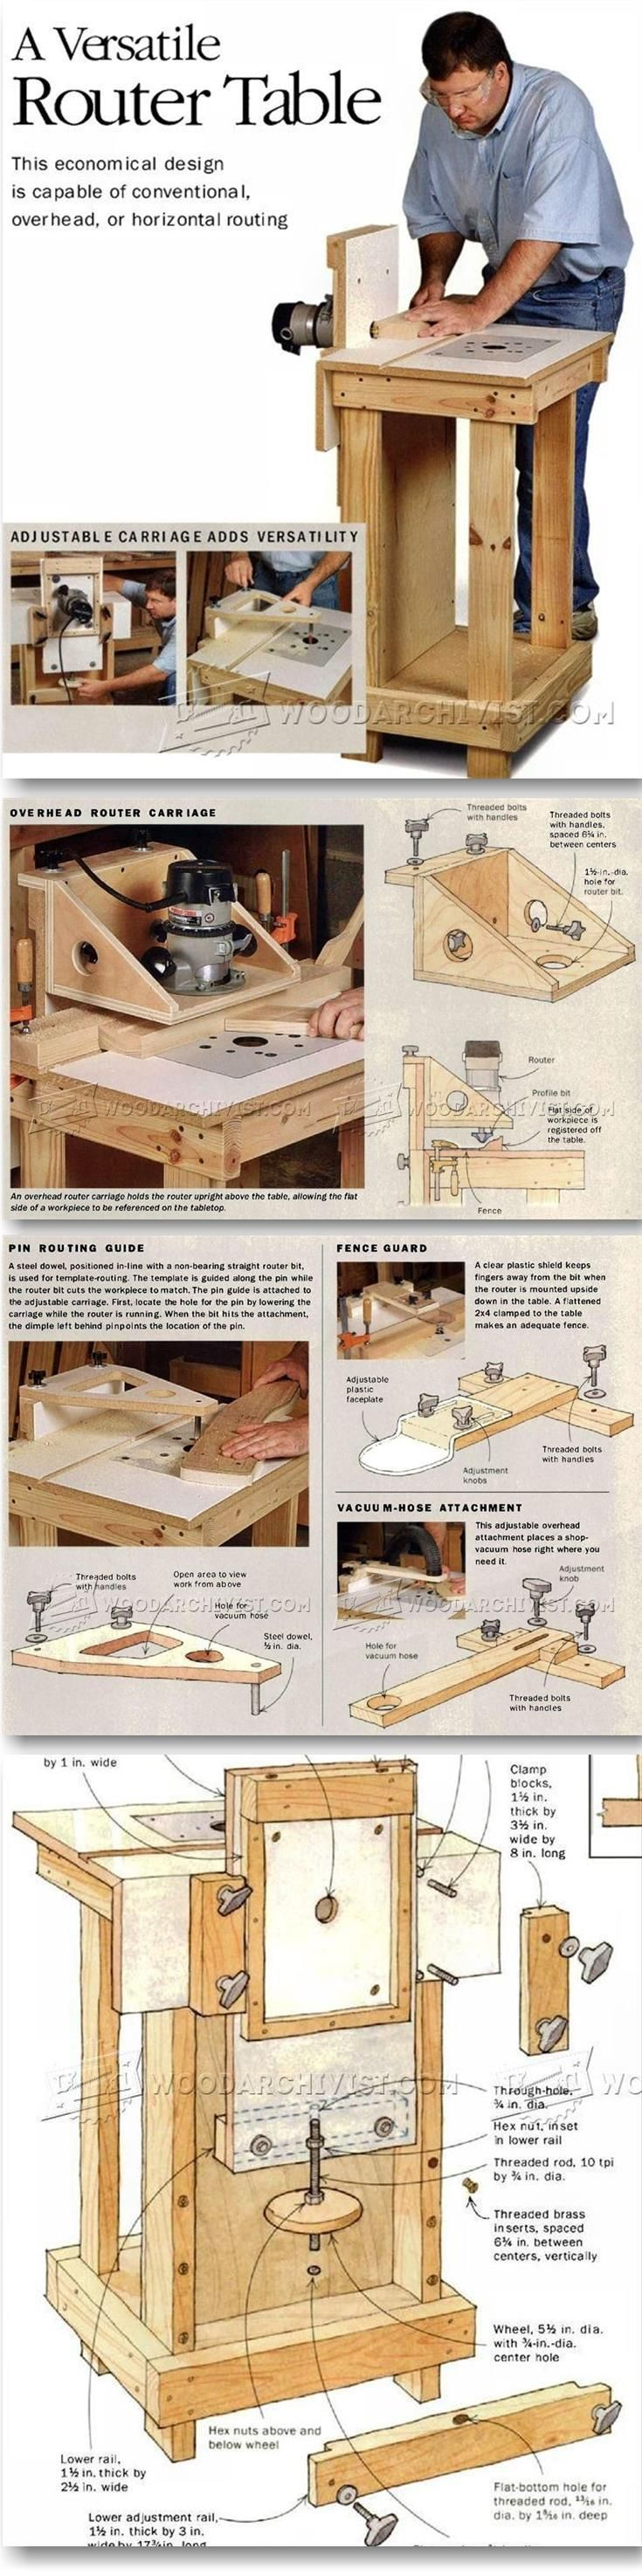 Horizontal router table plans router tips jigs and fixtures horizontal router table plans router tips jigs and fixtures woodarchivist greentooth Choice Image